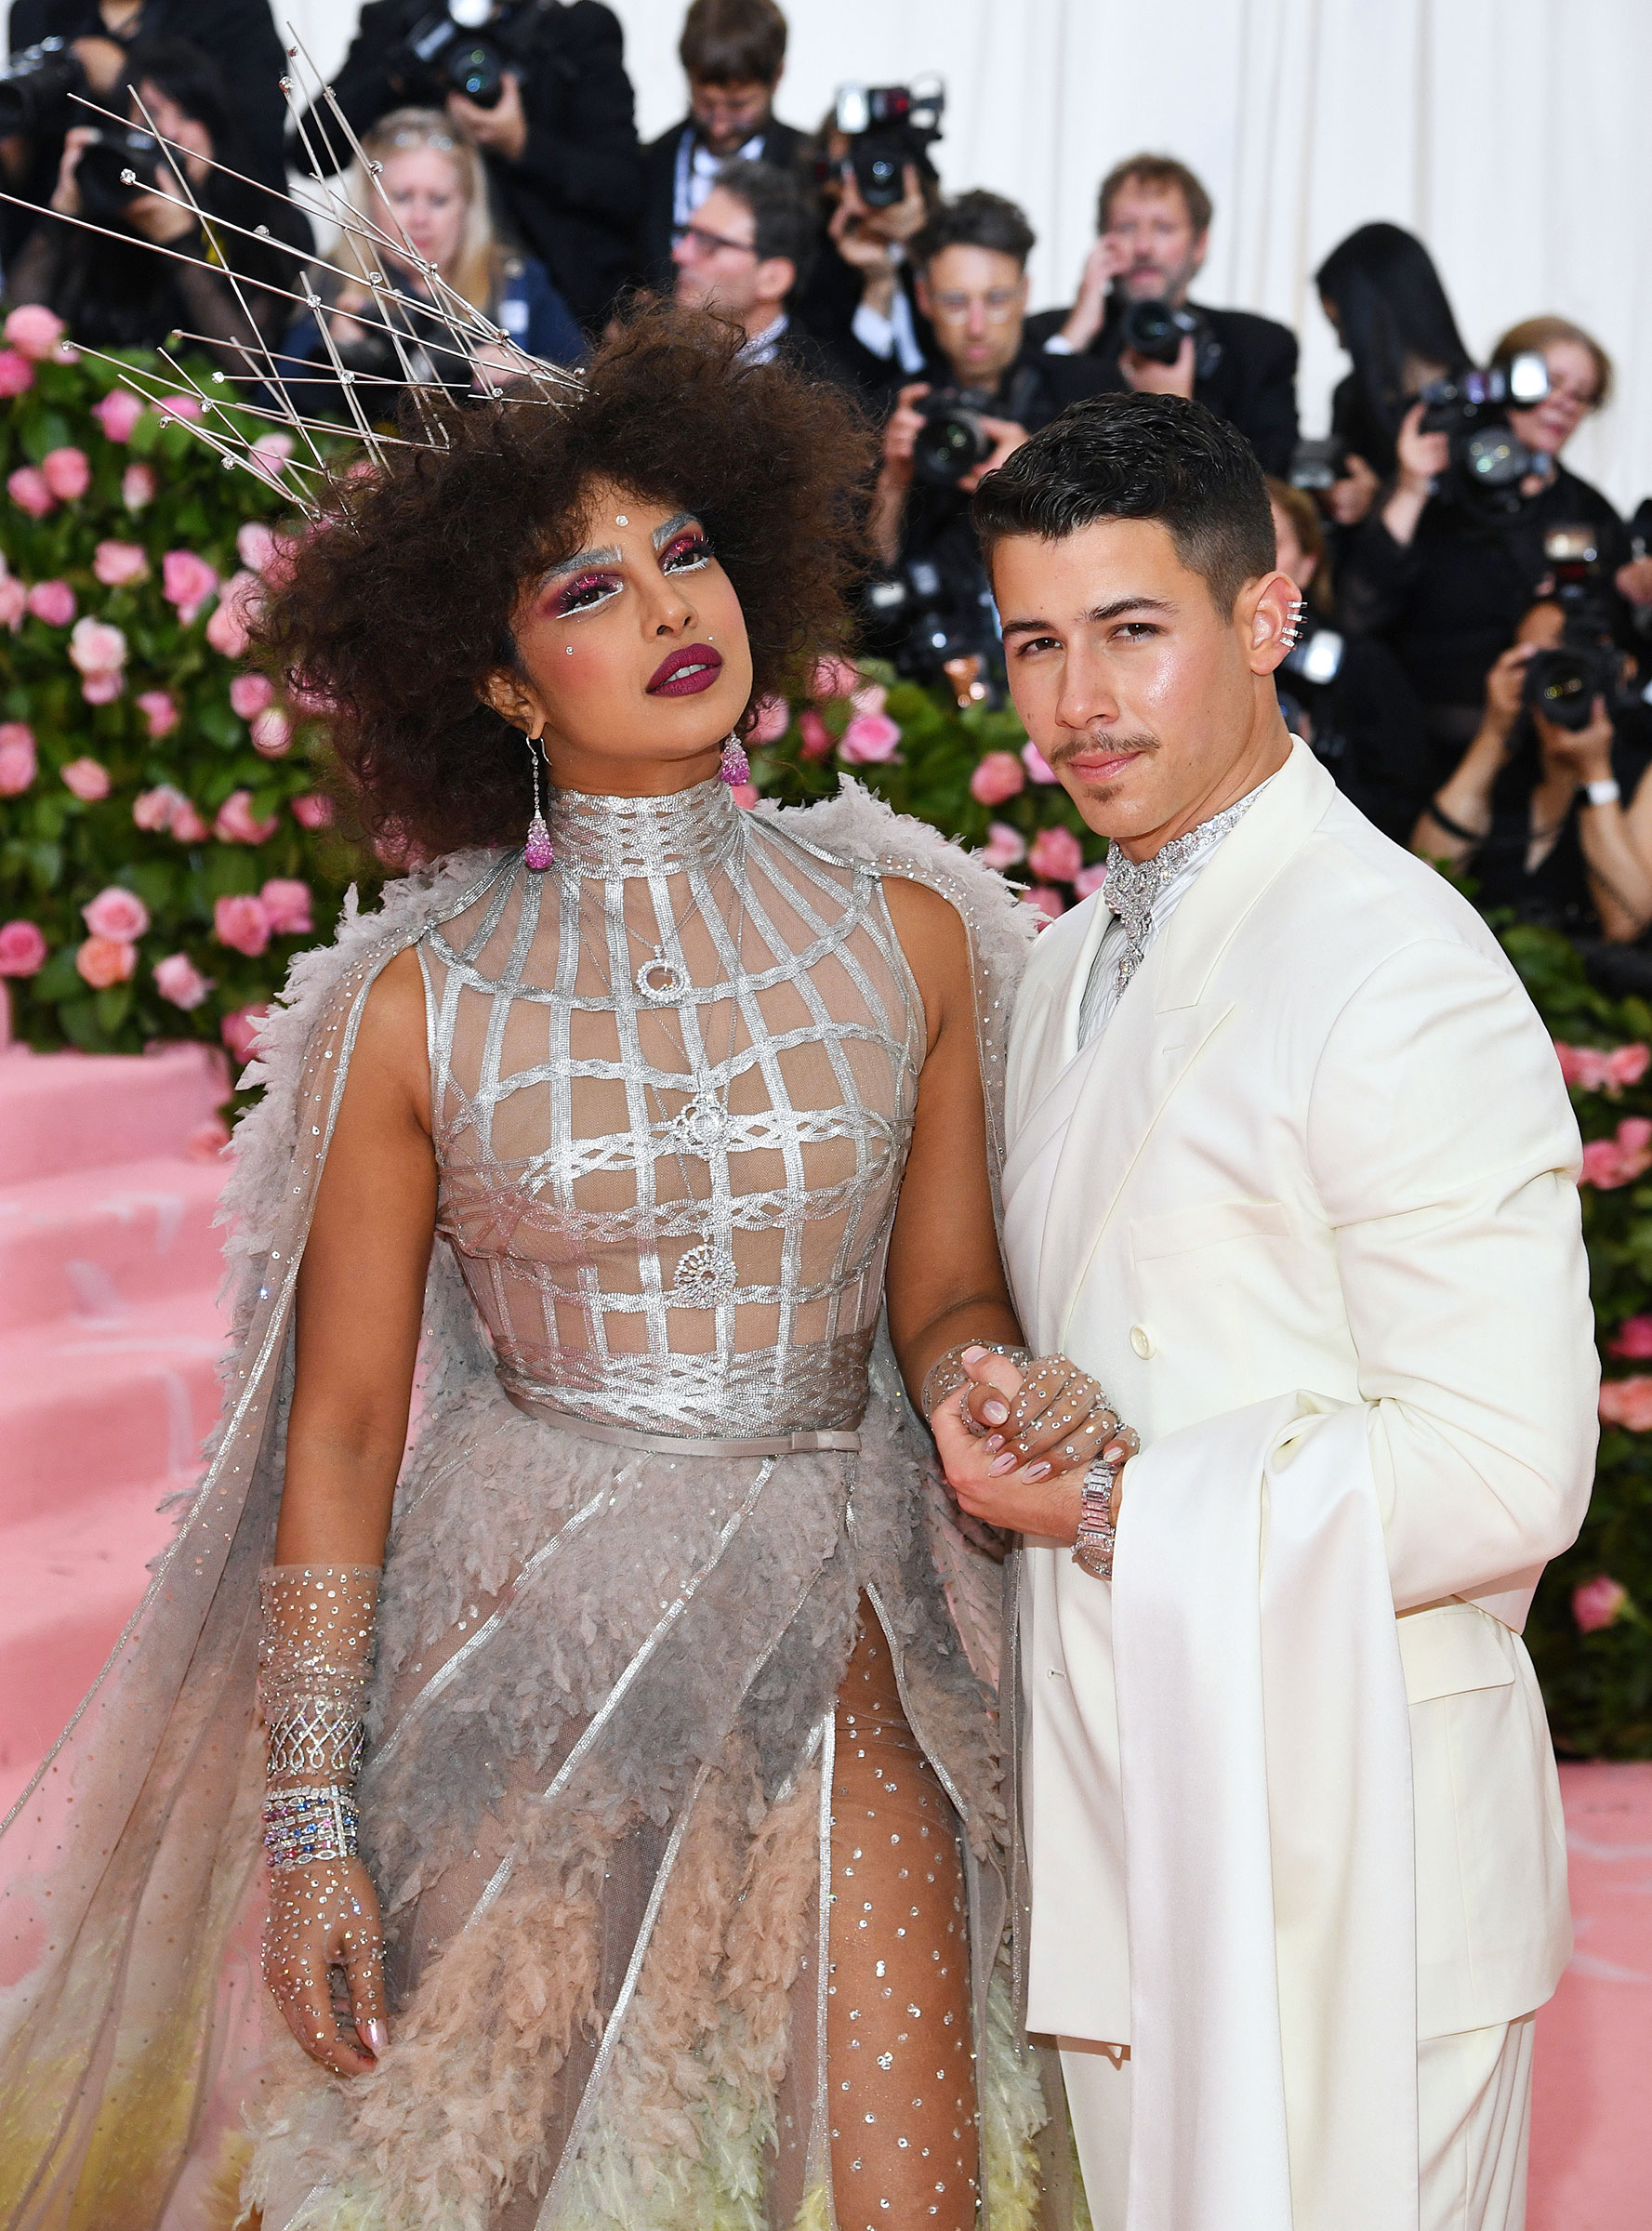 Priyanka Chopra and Nick Jonas attend The 2019 Met Gala Celebrating Camp: Notes on Fashion at Metropolitan Museum of Art on May 06, 2019 in New York City.